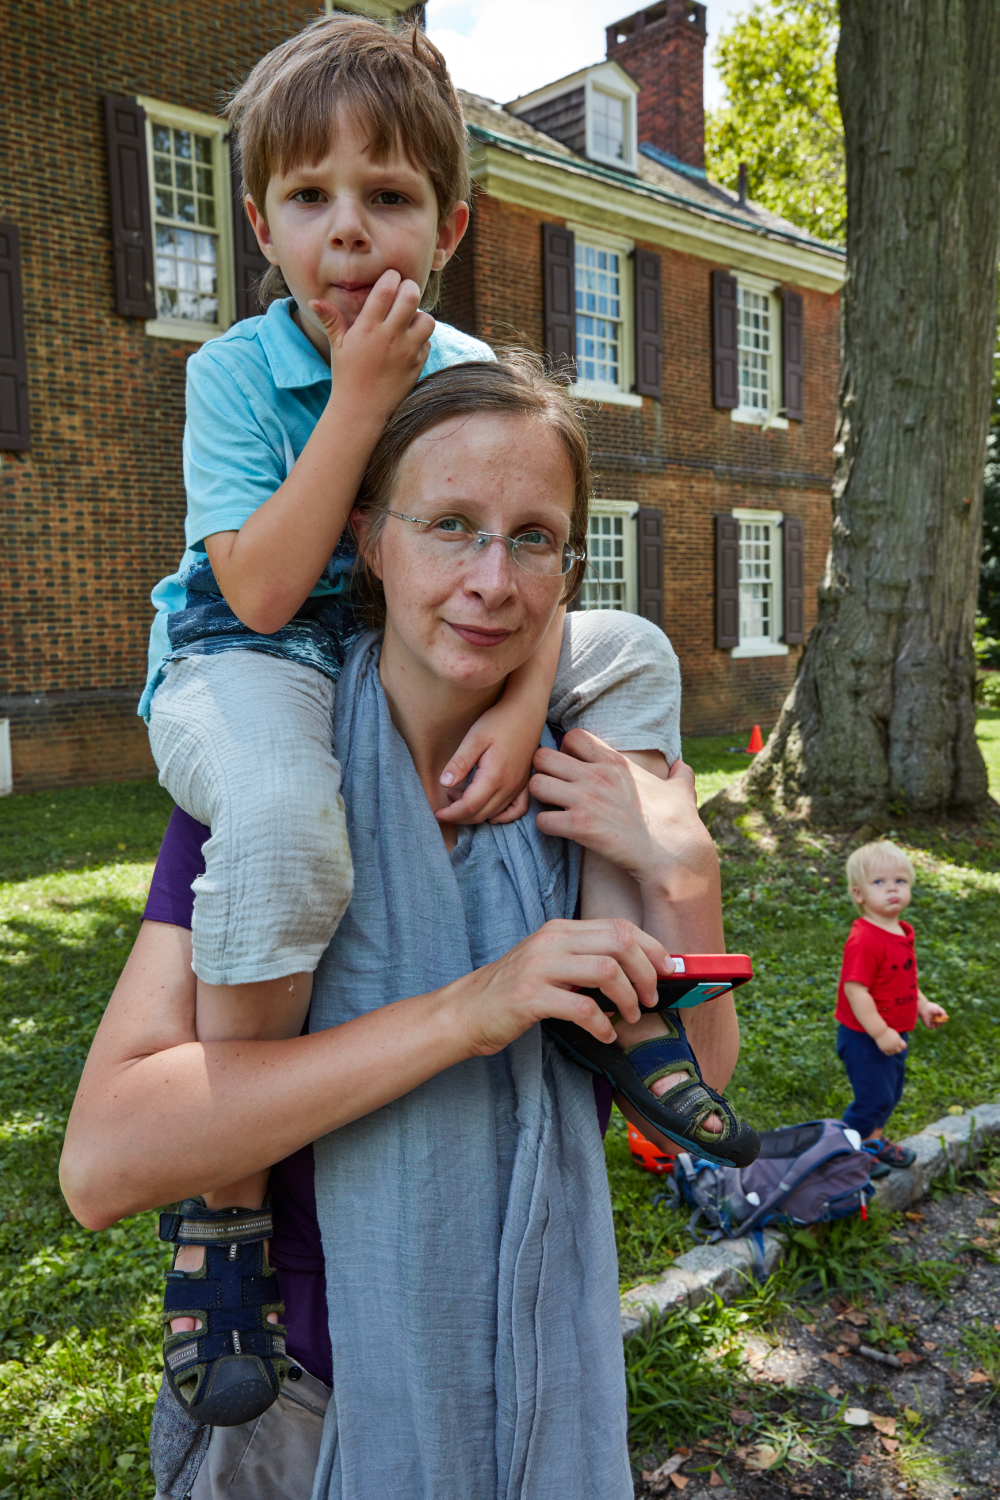 Art and Documentary Photography - Loading 04-08-18_WoodfordMansion-PeachFestival_437.png